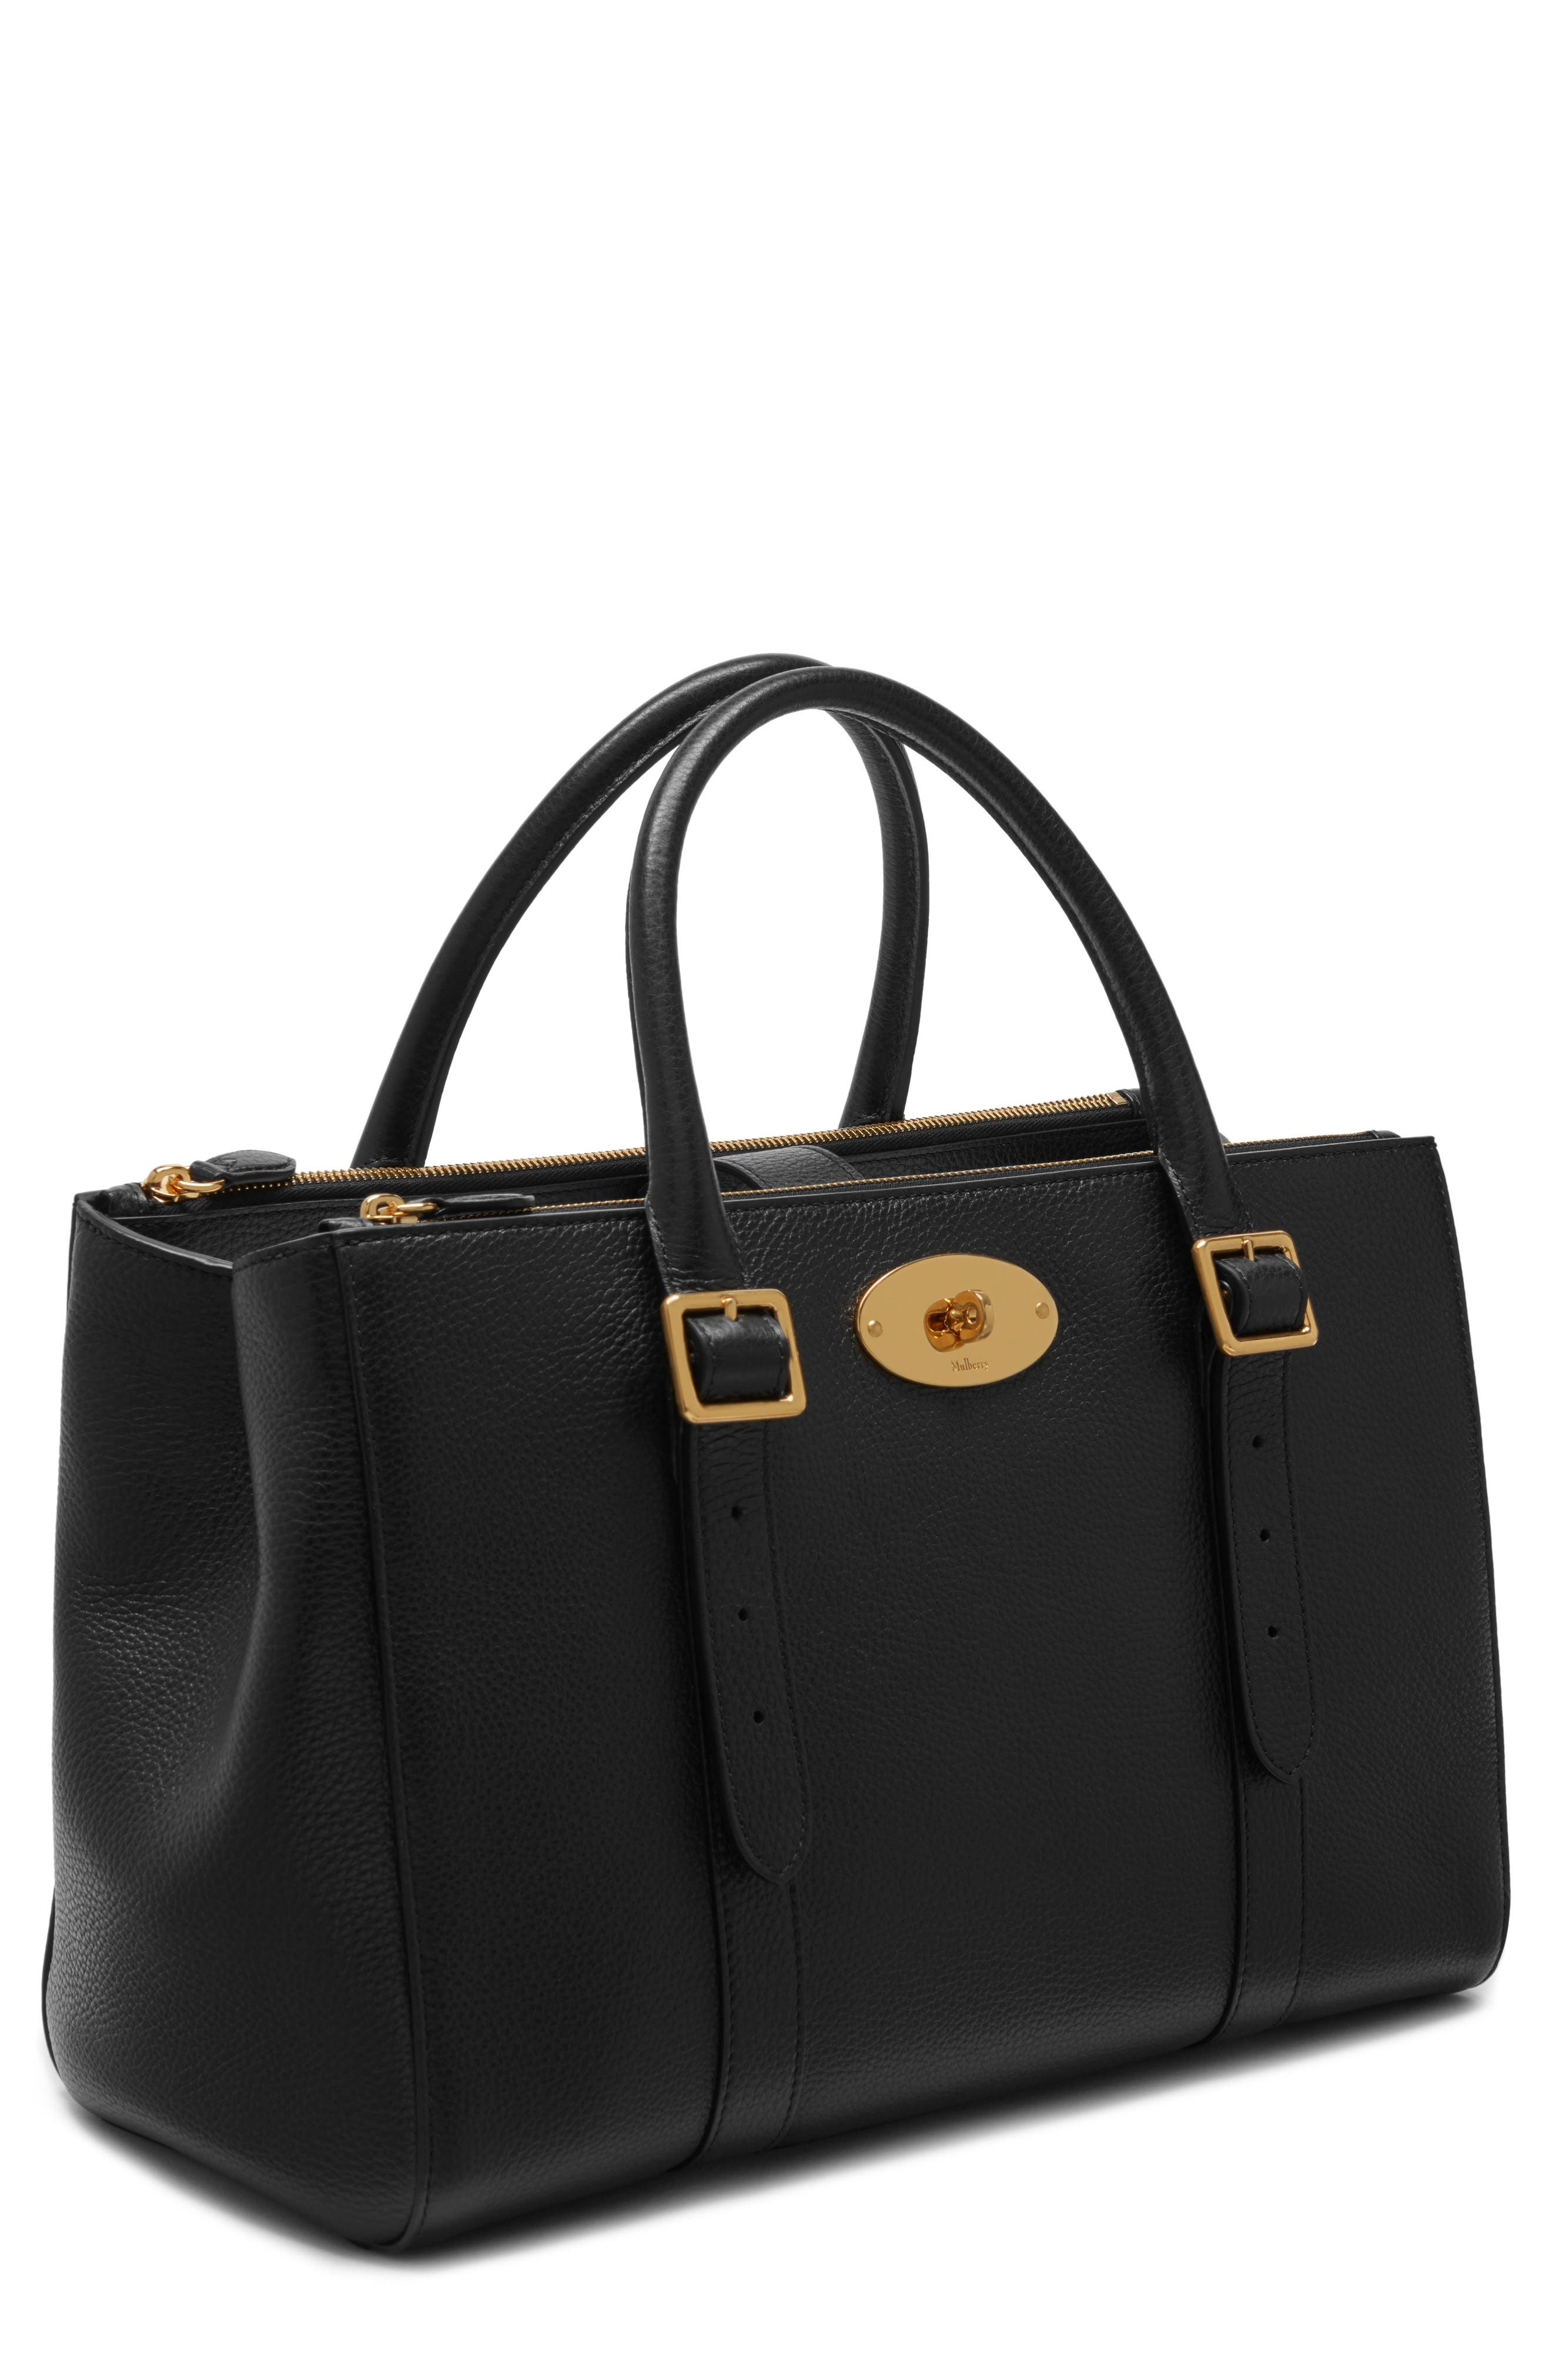 Bayswater Double Zip Leather Satchel,                             Main thumbnail 1, color,                             001